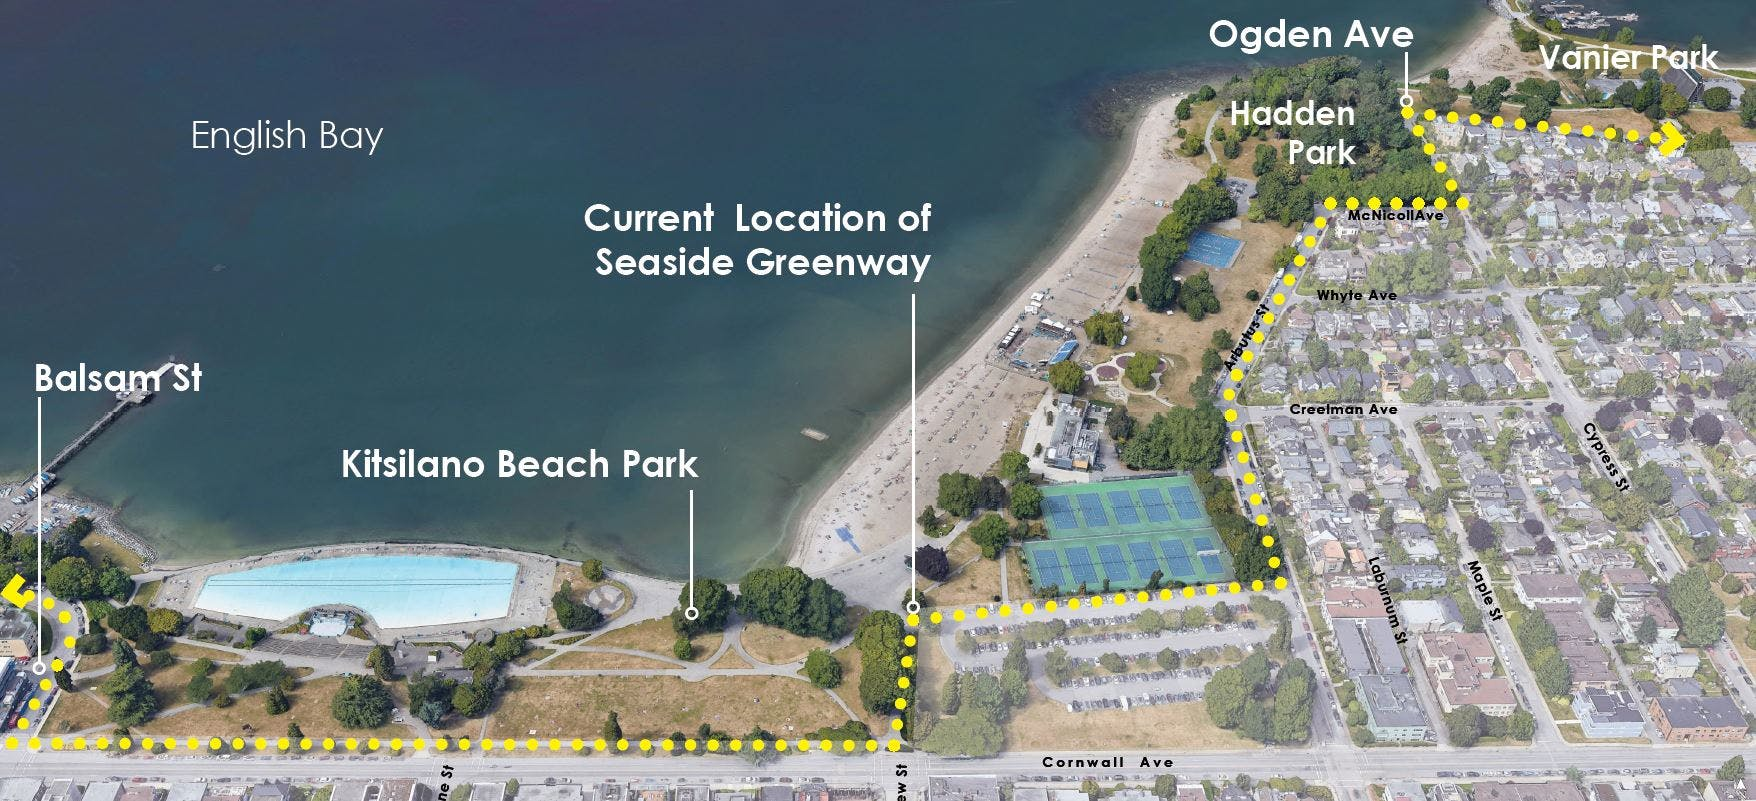 Aerial view of Kitsilano Beach Park showing the current route of the pathway from Balsam Street to Ogden Avenue in a dotted yellow line